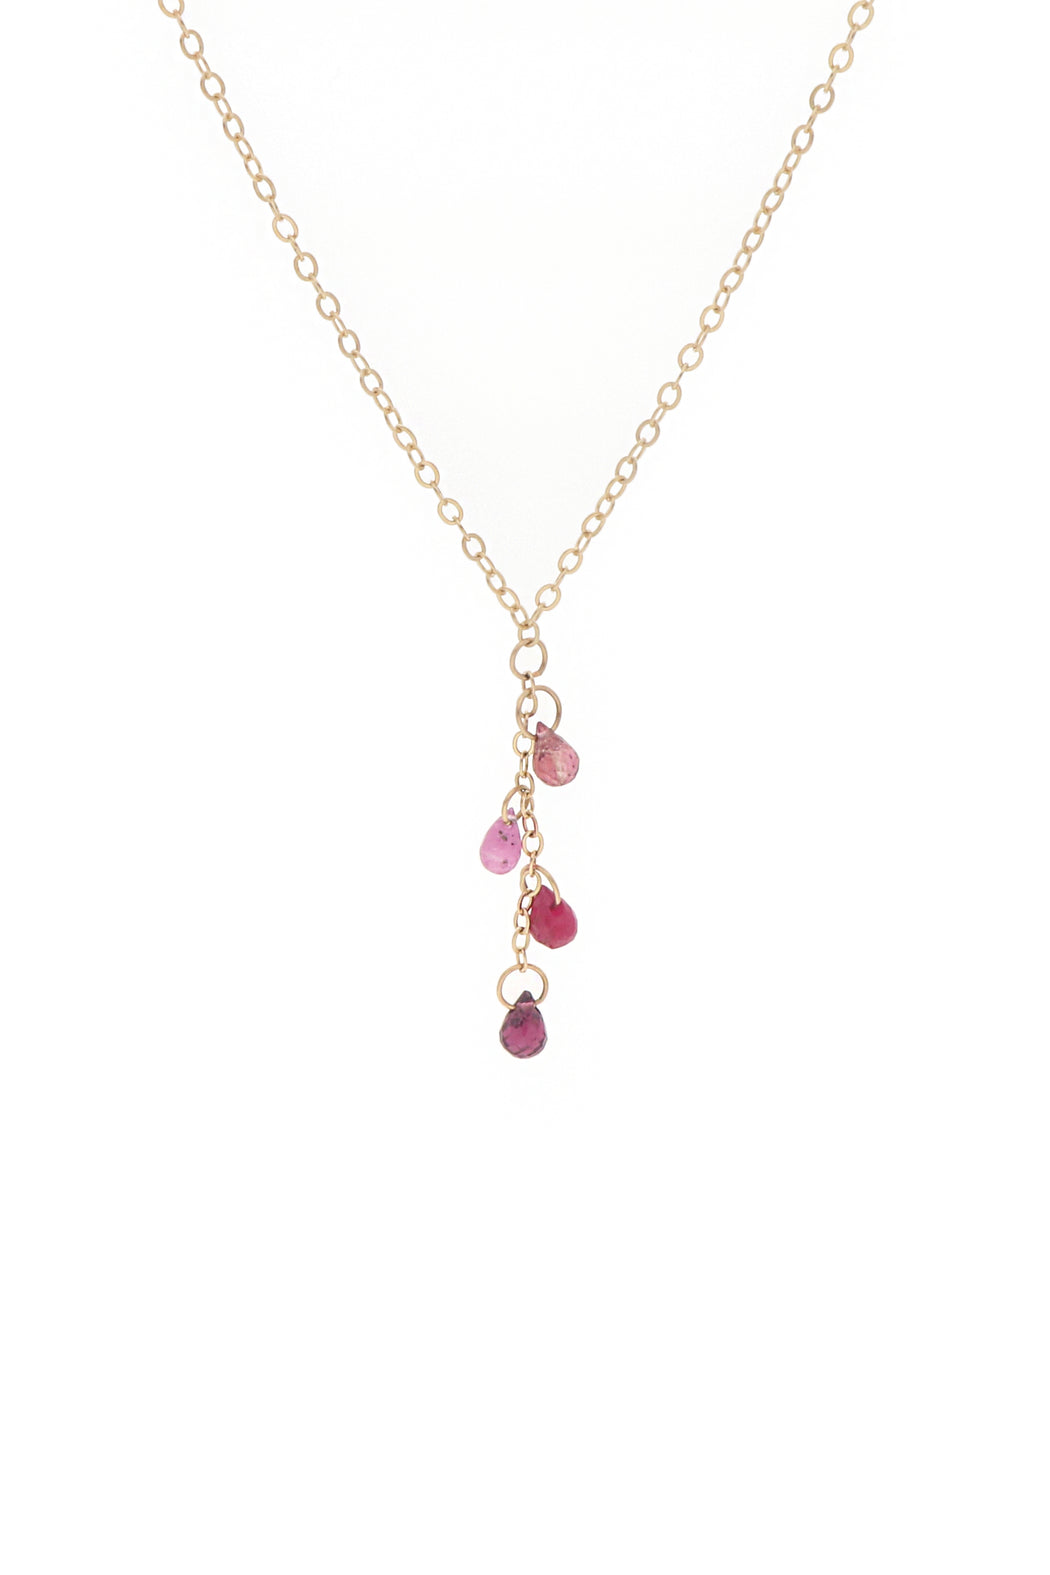 Blue Ruby Cause We Care Stone Gold Lariat Necklace